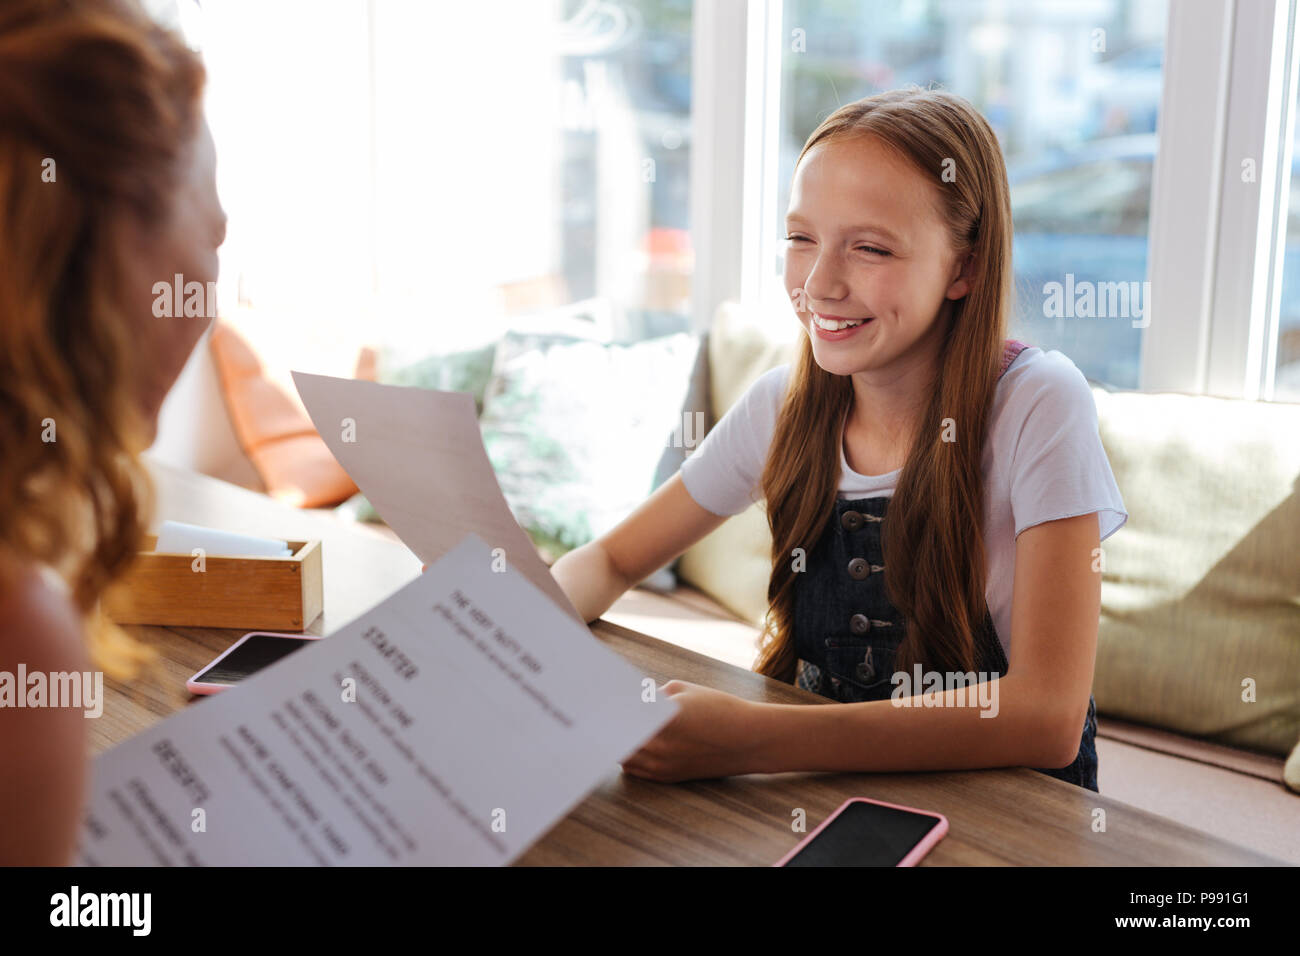 Blonde-haired girl smiling tout en choisissant le menu de plats Photo Stock